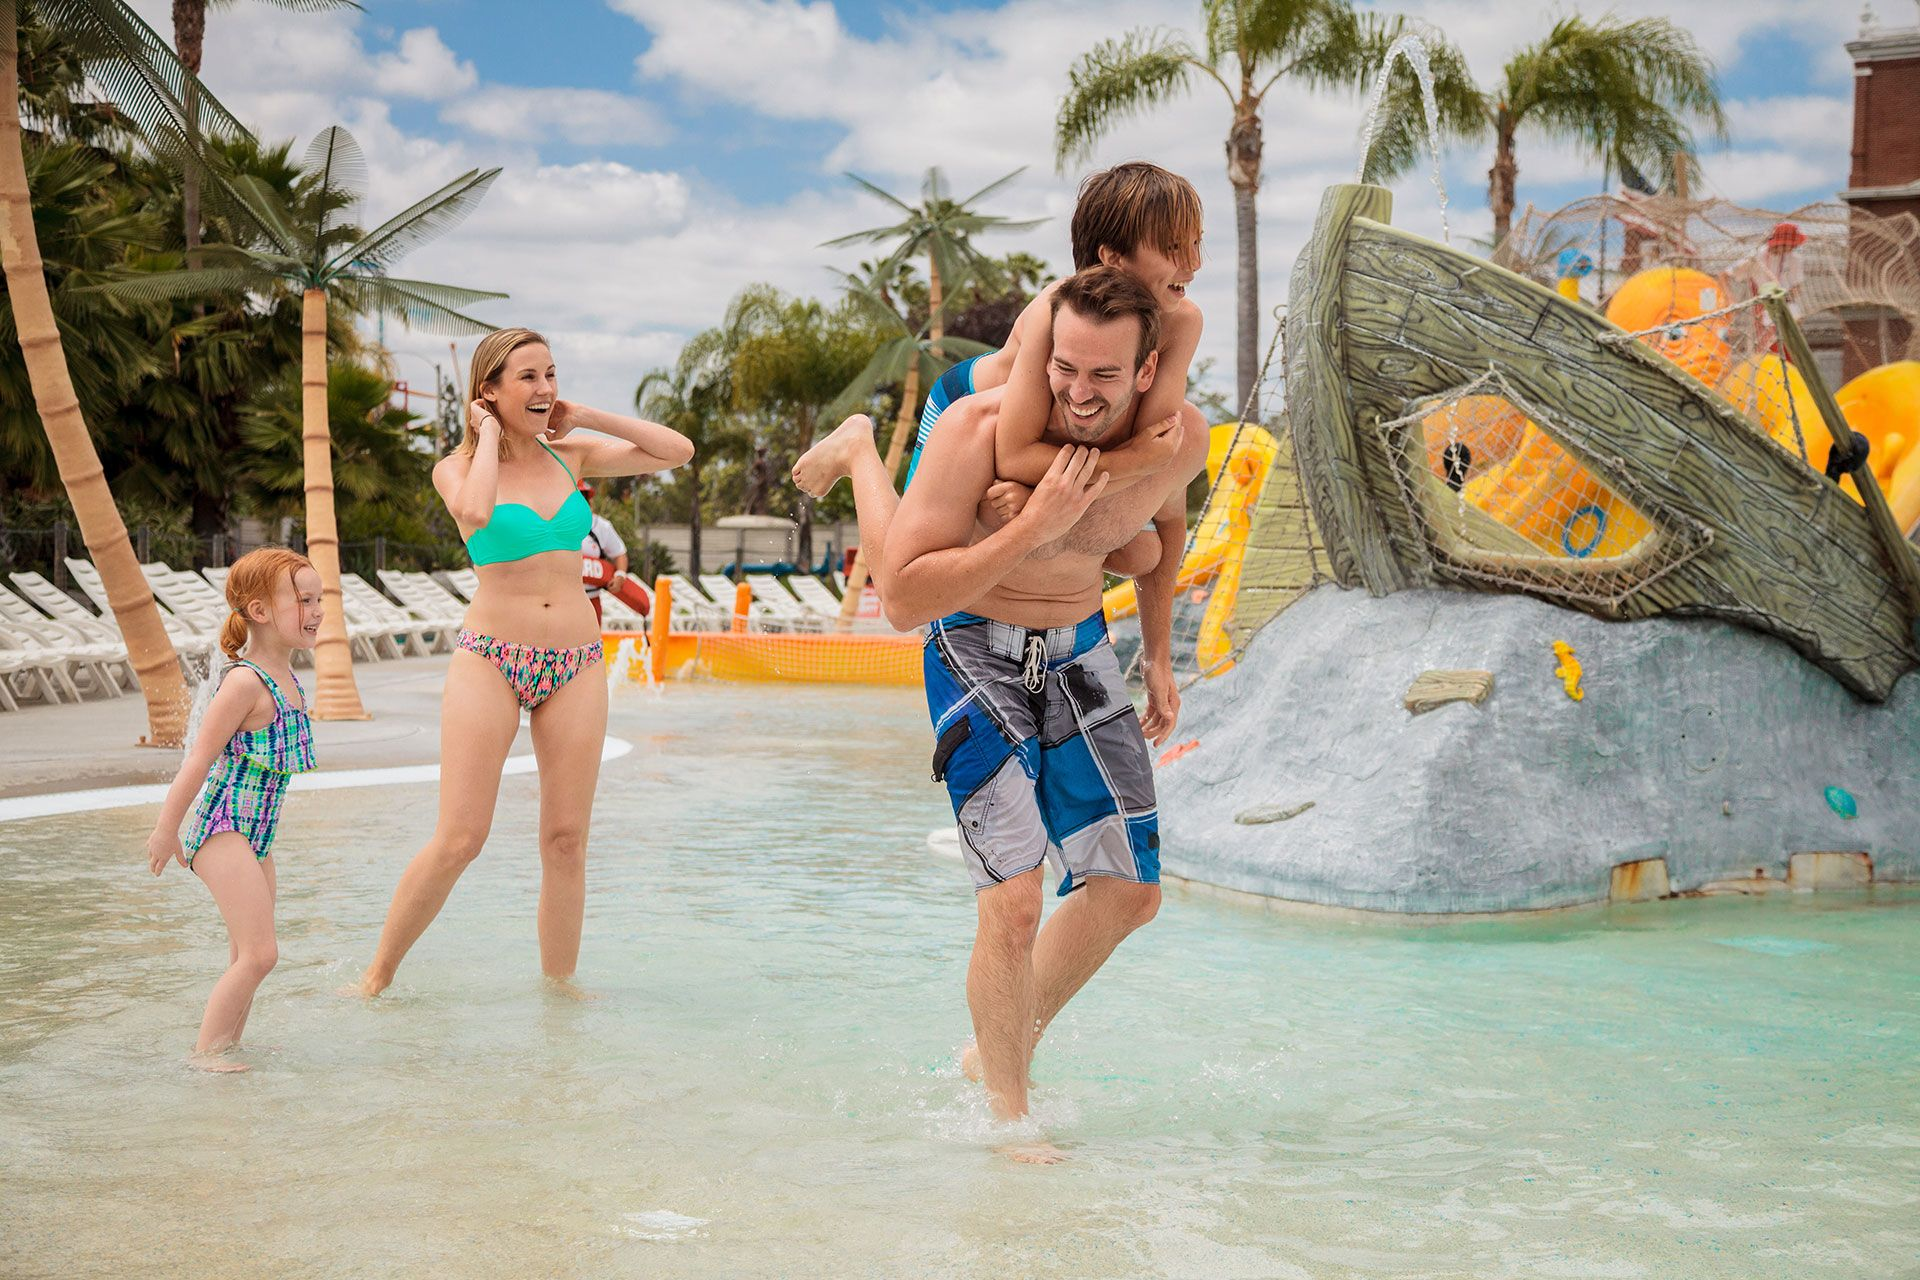 556b1ba402dad 13 Family Vacations That Are Better Than Disney World - Family Vacation  Critic